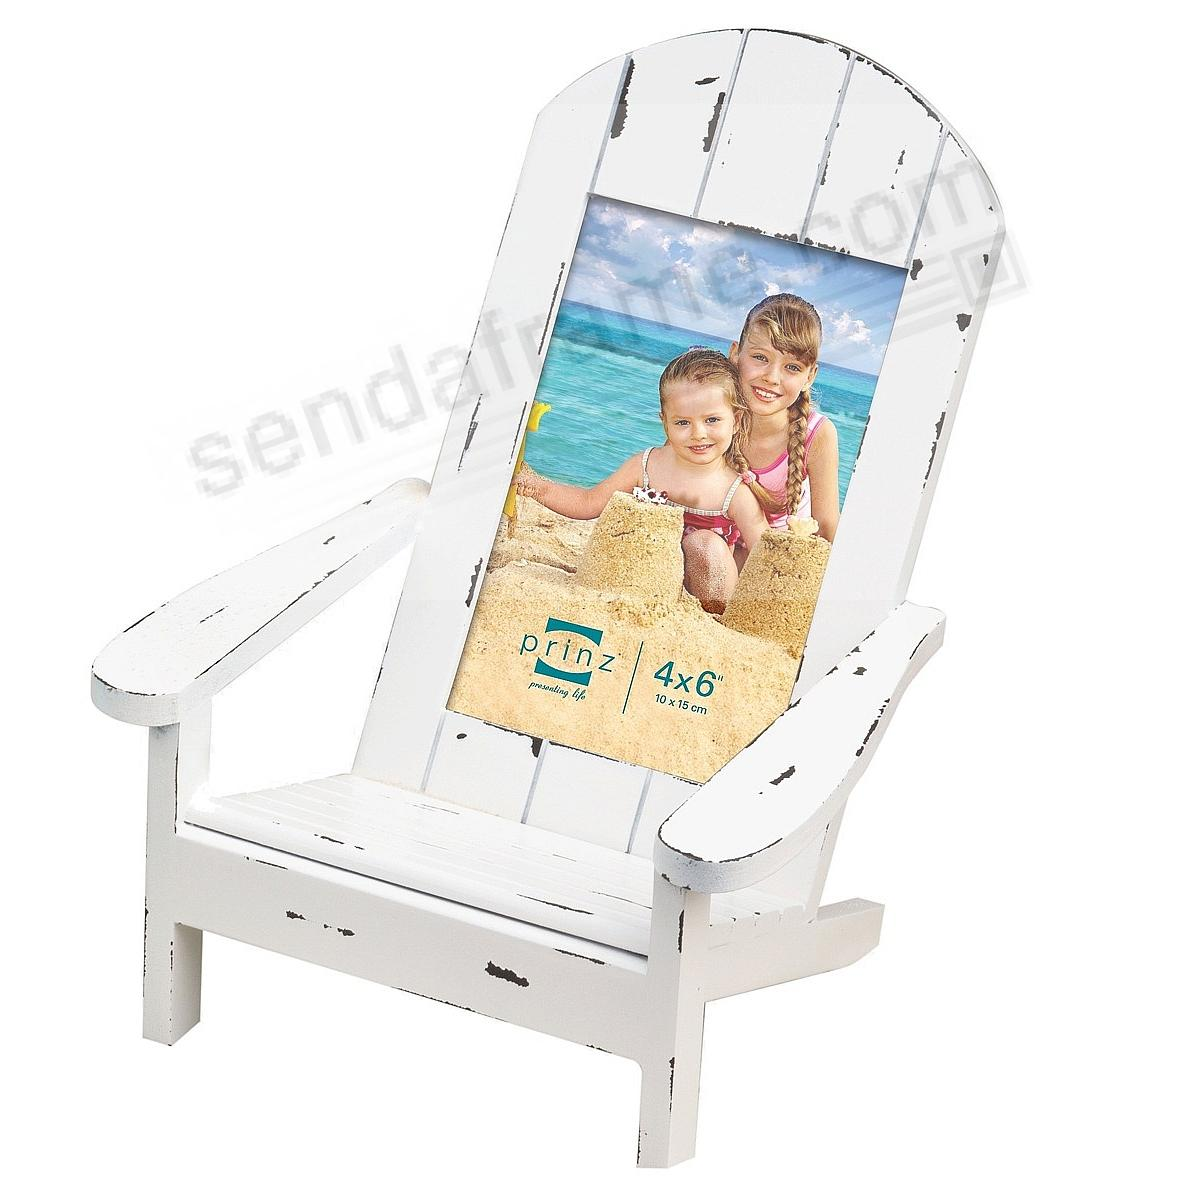 EASY LIVING Adirondack Chair White 4x6 Frame In Natural